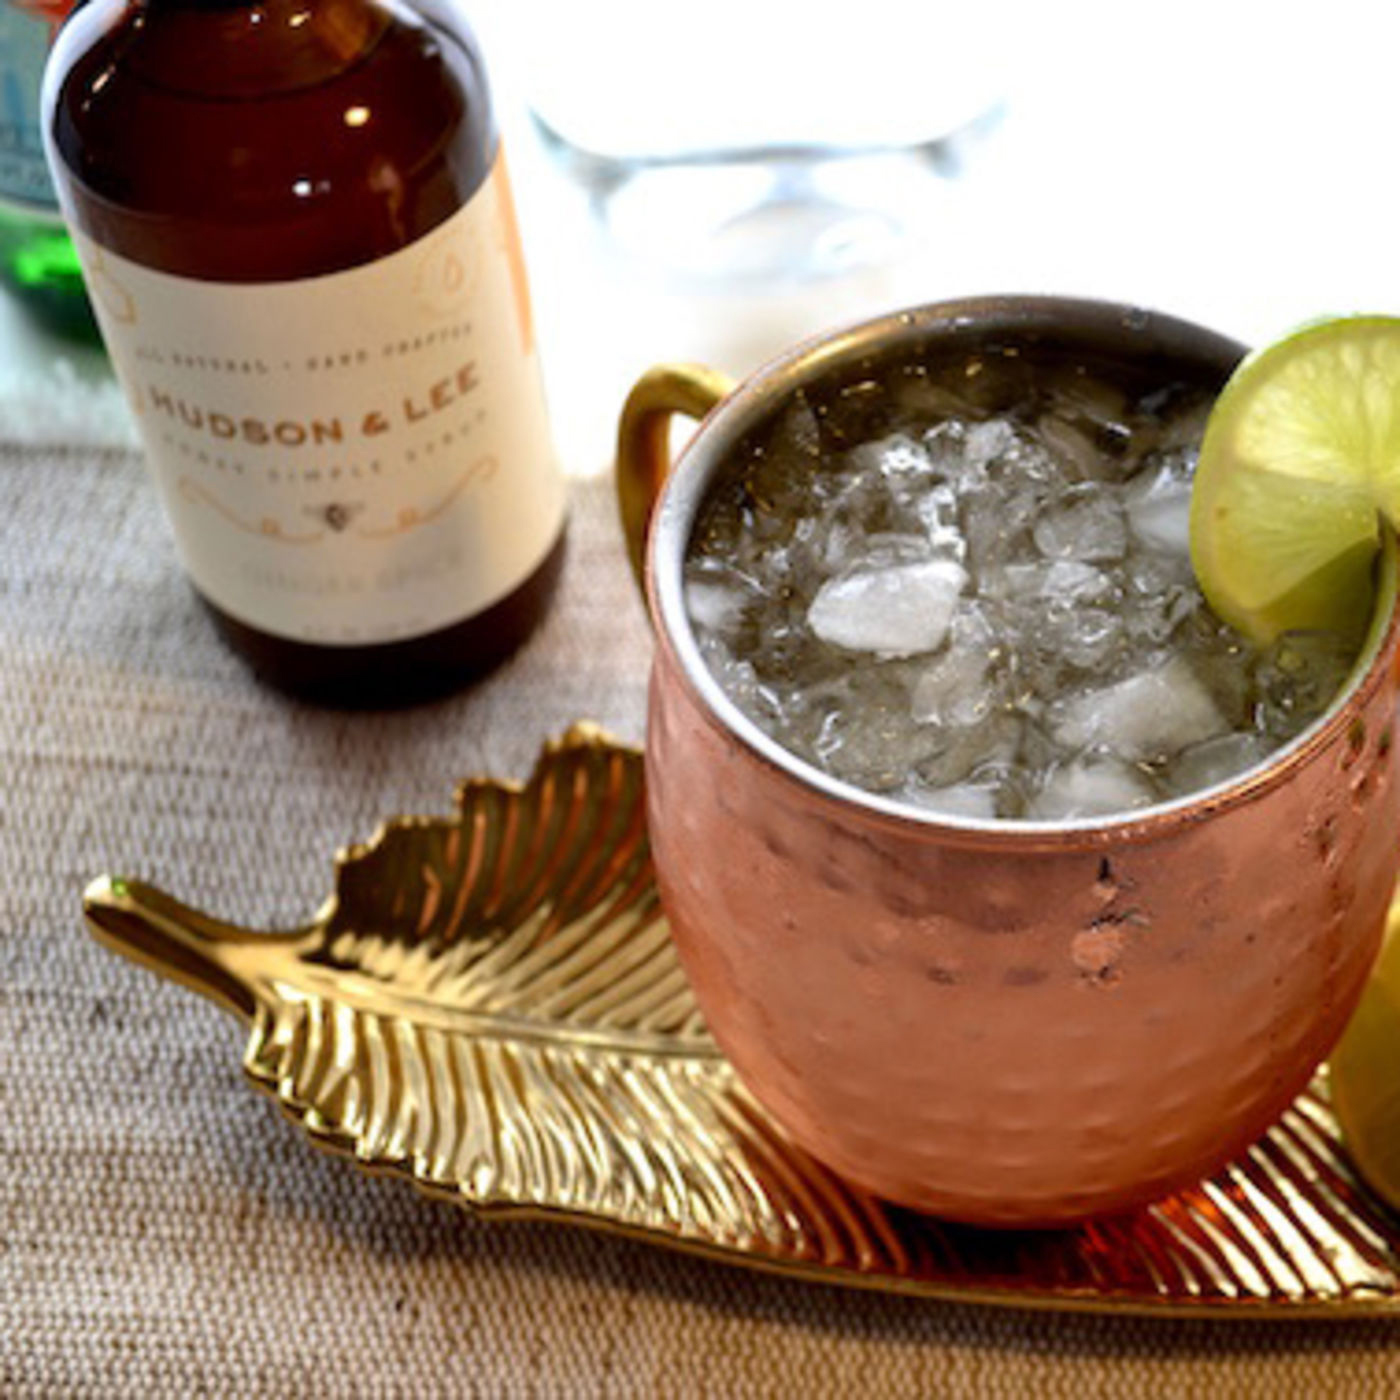 Make the perfect Moscow mule with Hudson & Lee ginger honey simple syrup